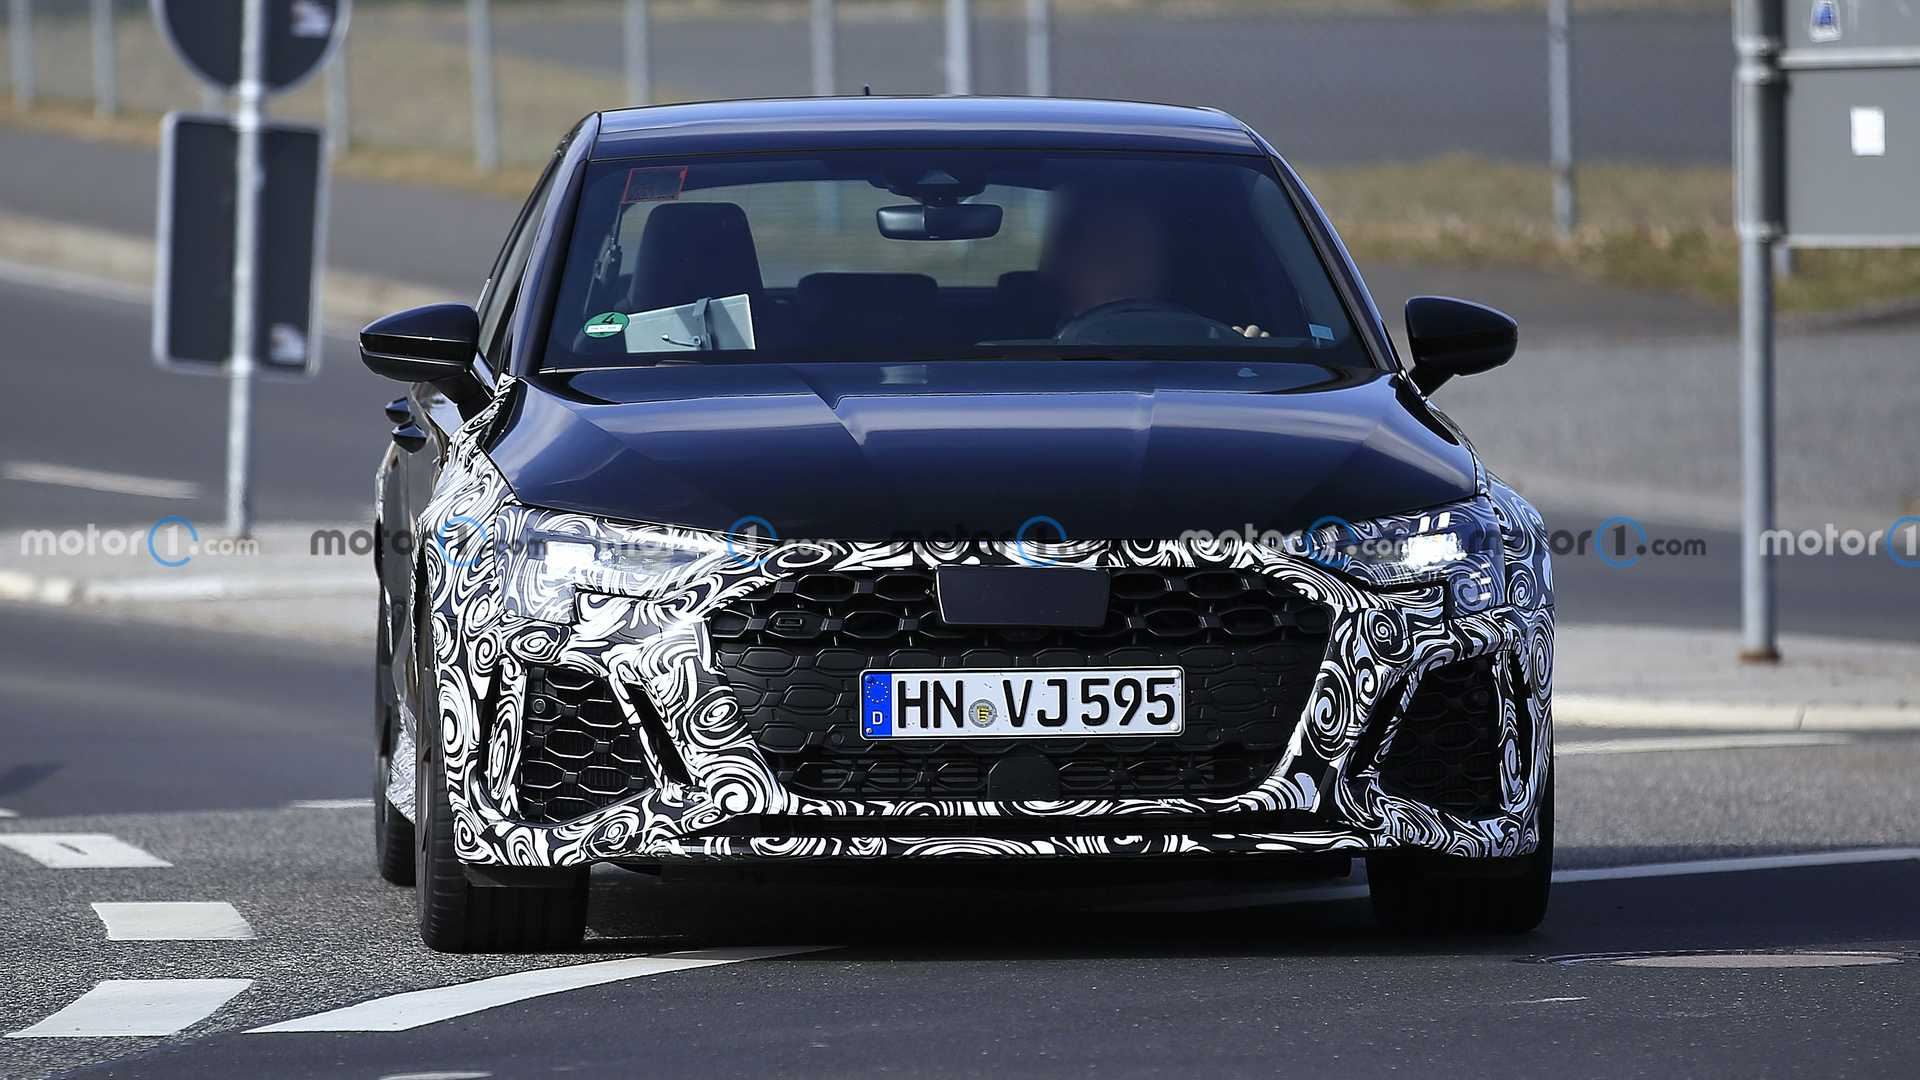 The first time the next-gen Audi RS3 was spied testing in a mule body was in May 2019. There have been numerous sightings since then, most showing a heavily cladded production body, and today's batch of photos finally lets us see the new RS3 in its full glory.